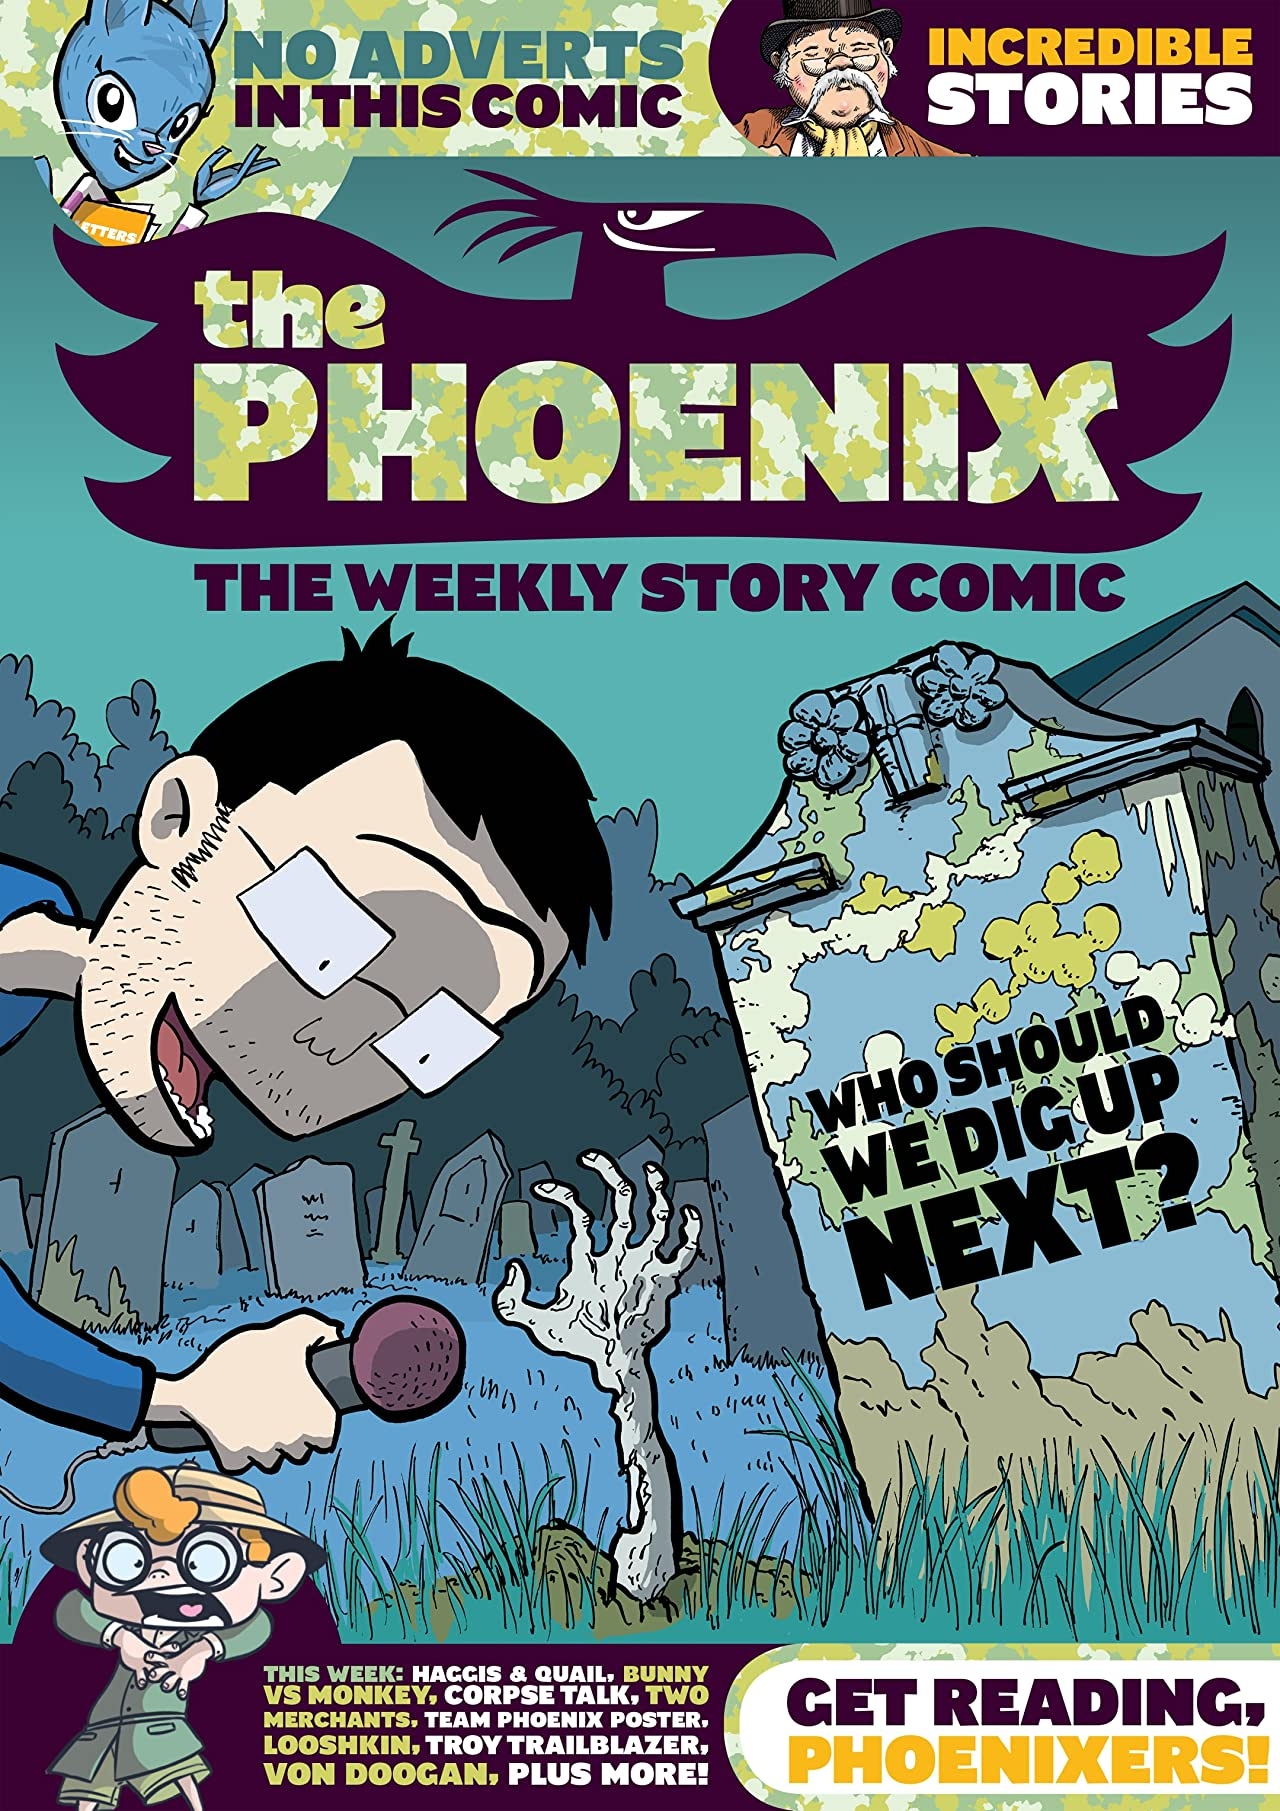 The Phoenix #115: The Weekly Story Comic